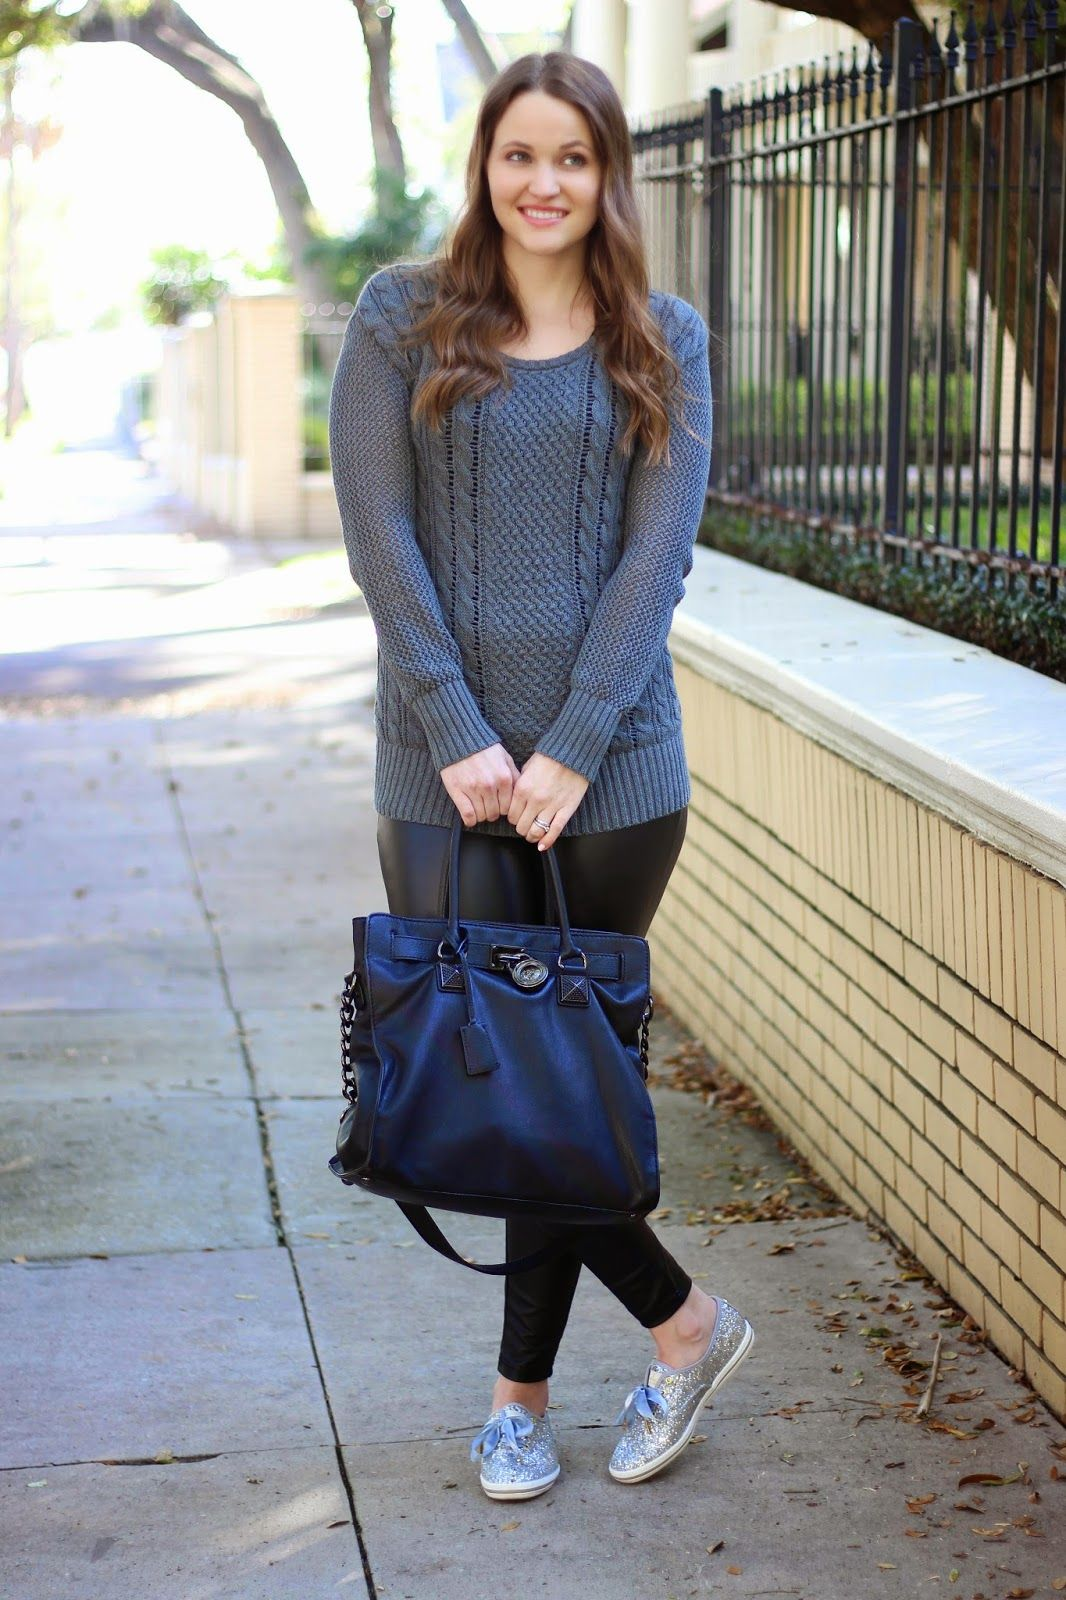 Kelly Elizabeth Style: Cable Knit and Faux Leather - grey cable knit sweater: Target; faux leather leggings: Hue; black bag: Hamilton by Michael Kors; silver glitter shoes: Kate Spade for Keds; lip color: Mistress lipstick and Sophia lip gloss by Buxom Cosmetics